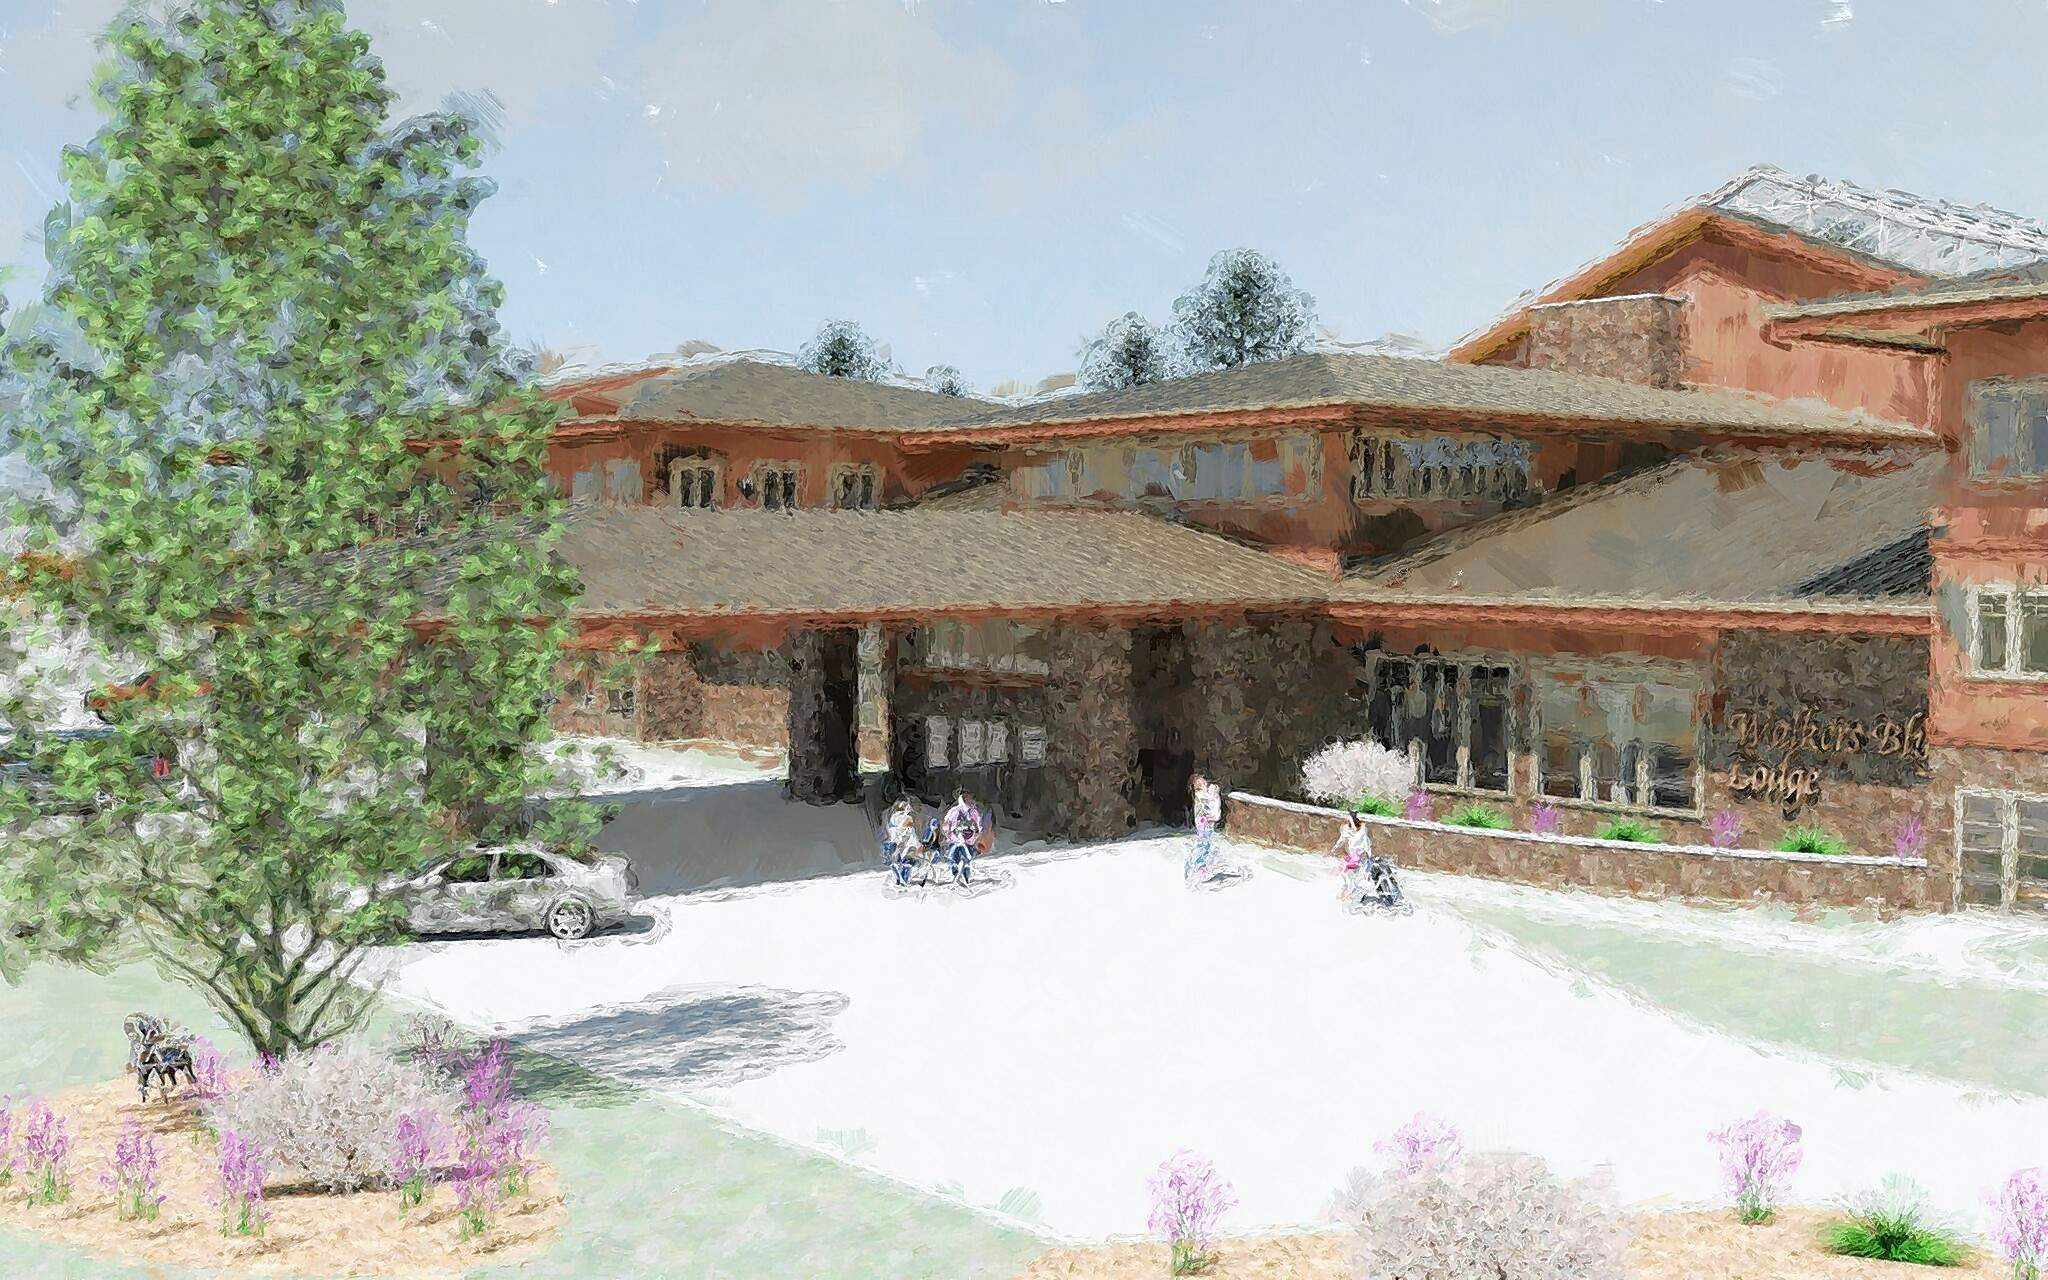 Rendering showing part of what the Walker's Bluff Lodge hotel would look like.